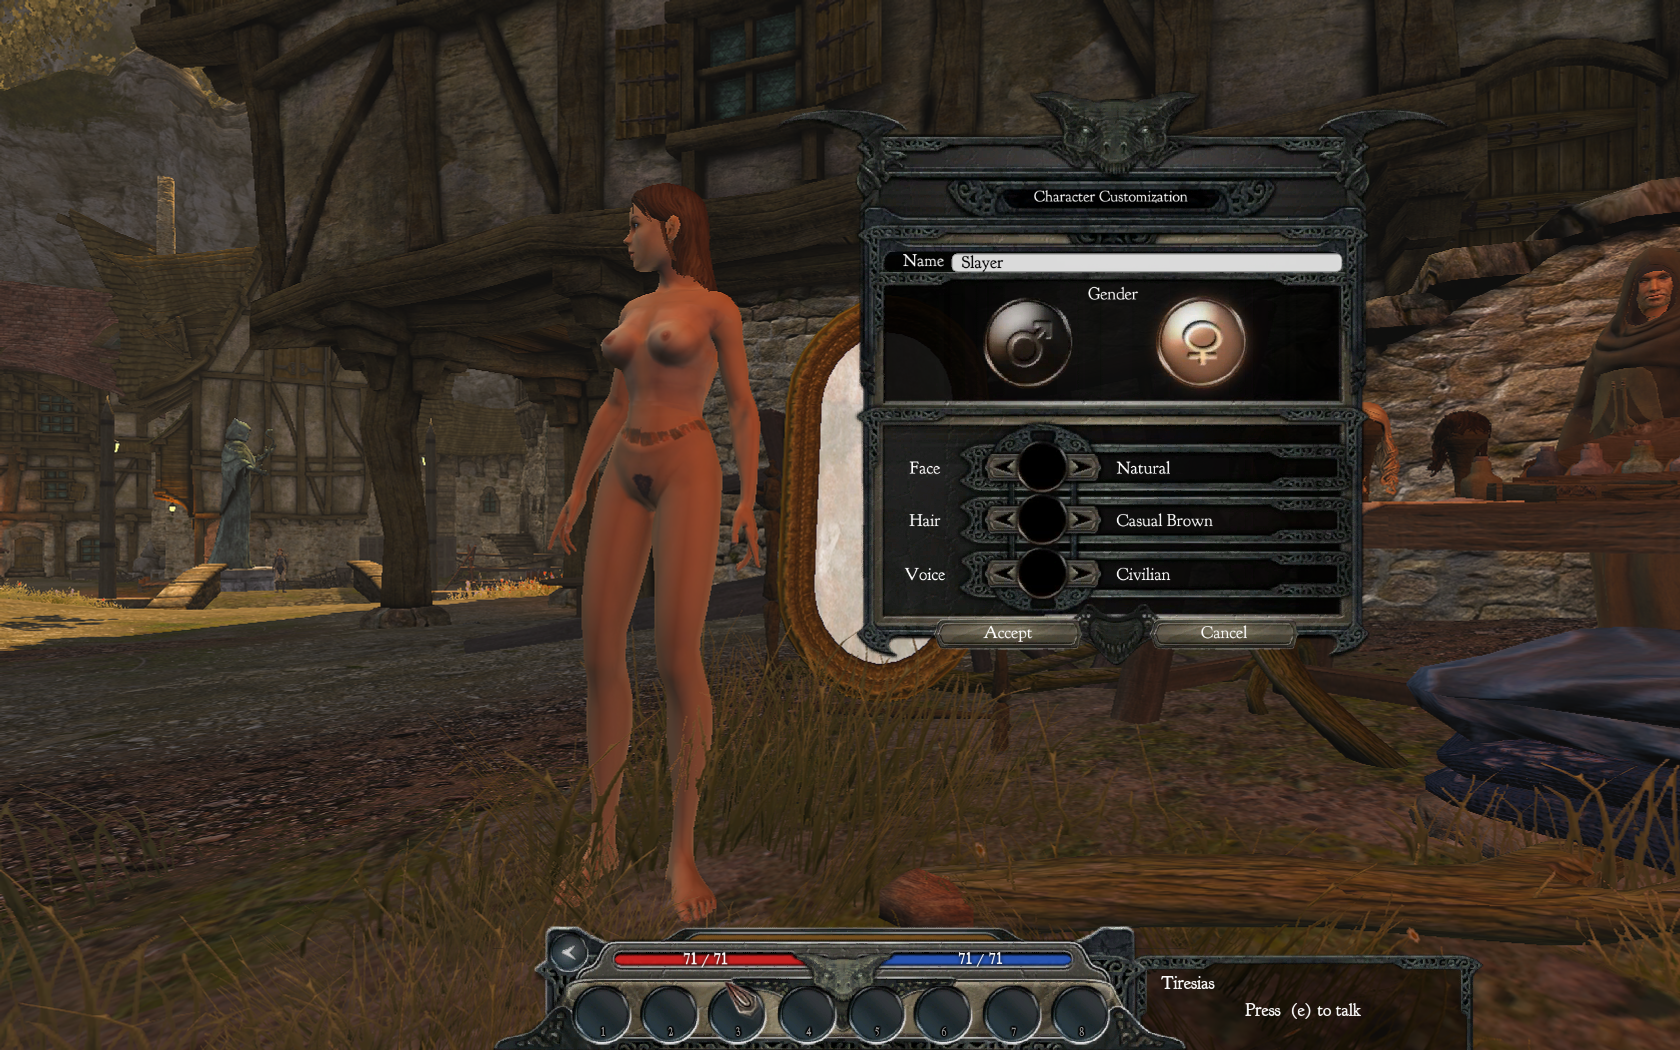 Nude mod download for oblivion hentia videos